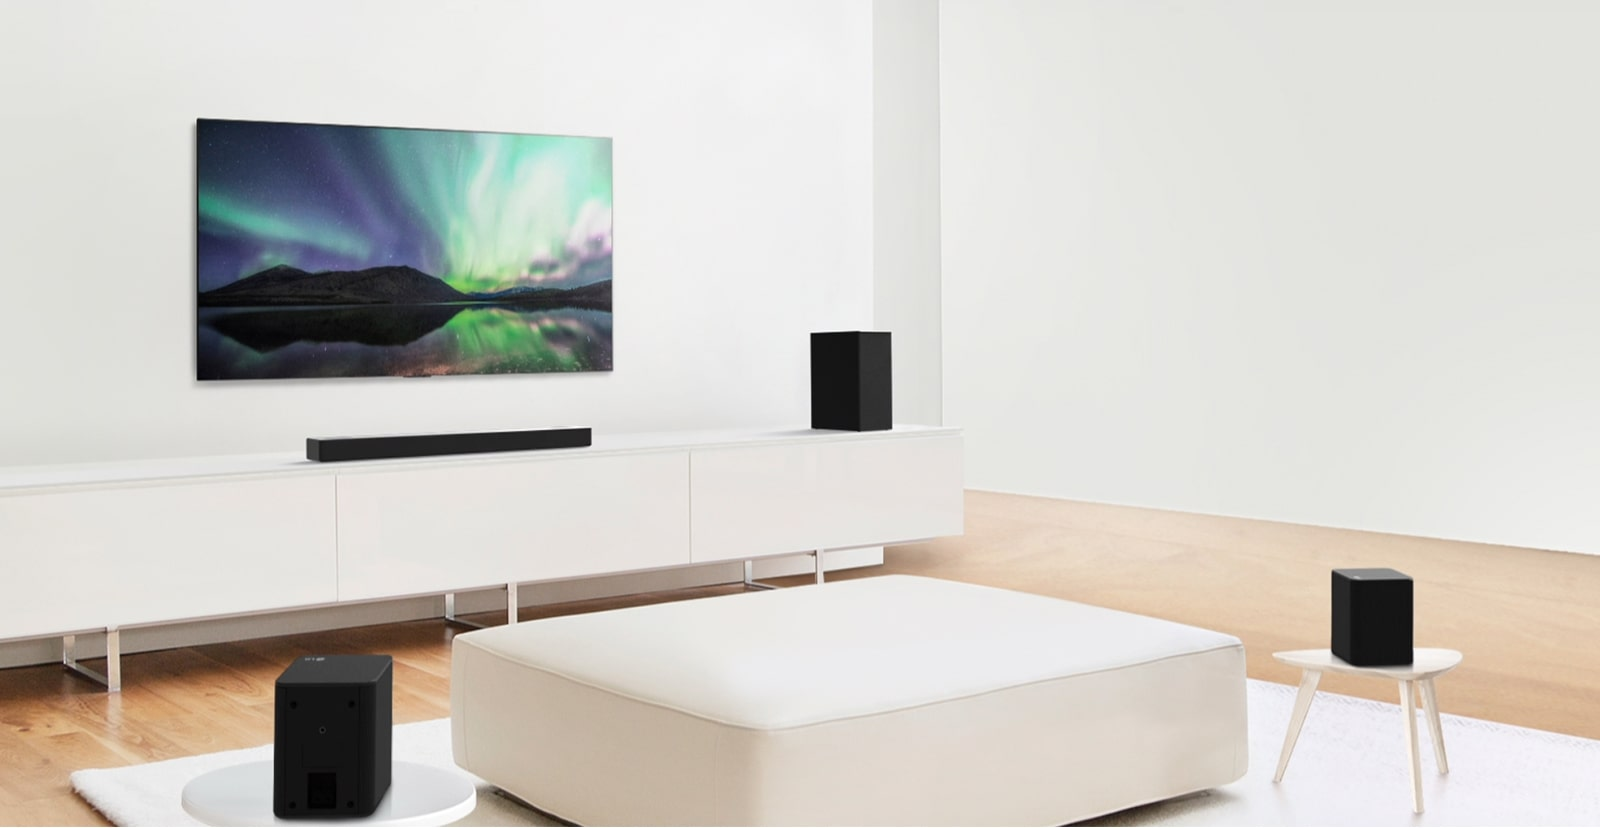 Video preview showing LG Soundbar in a white living room with 5.1.2 channel setup.